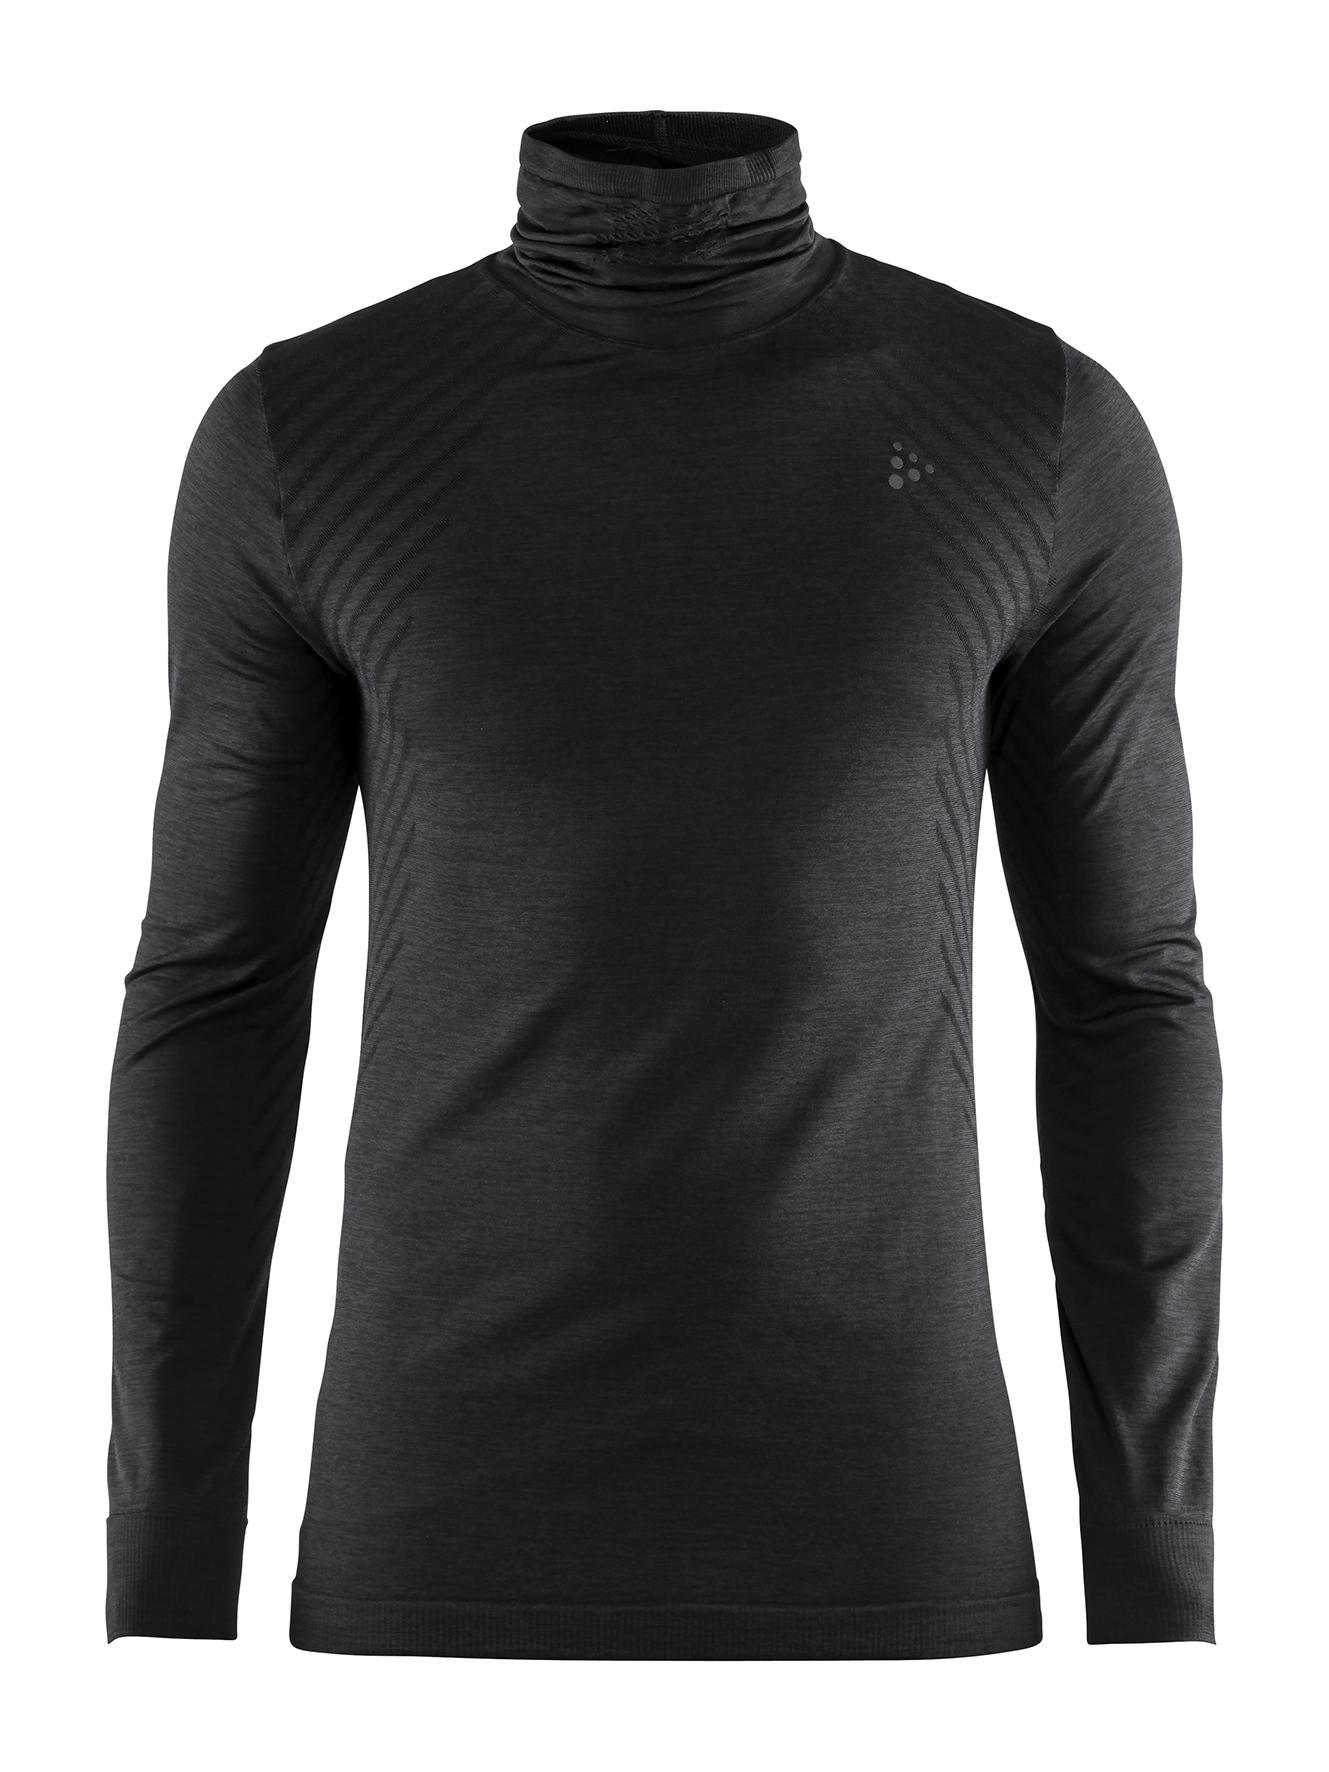 Fuseknit Comfort Turtleneck Man XL (B99000) -> /media/download/1906599_m_99000.jpg